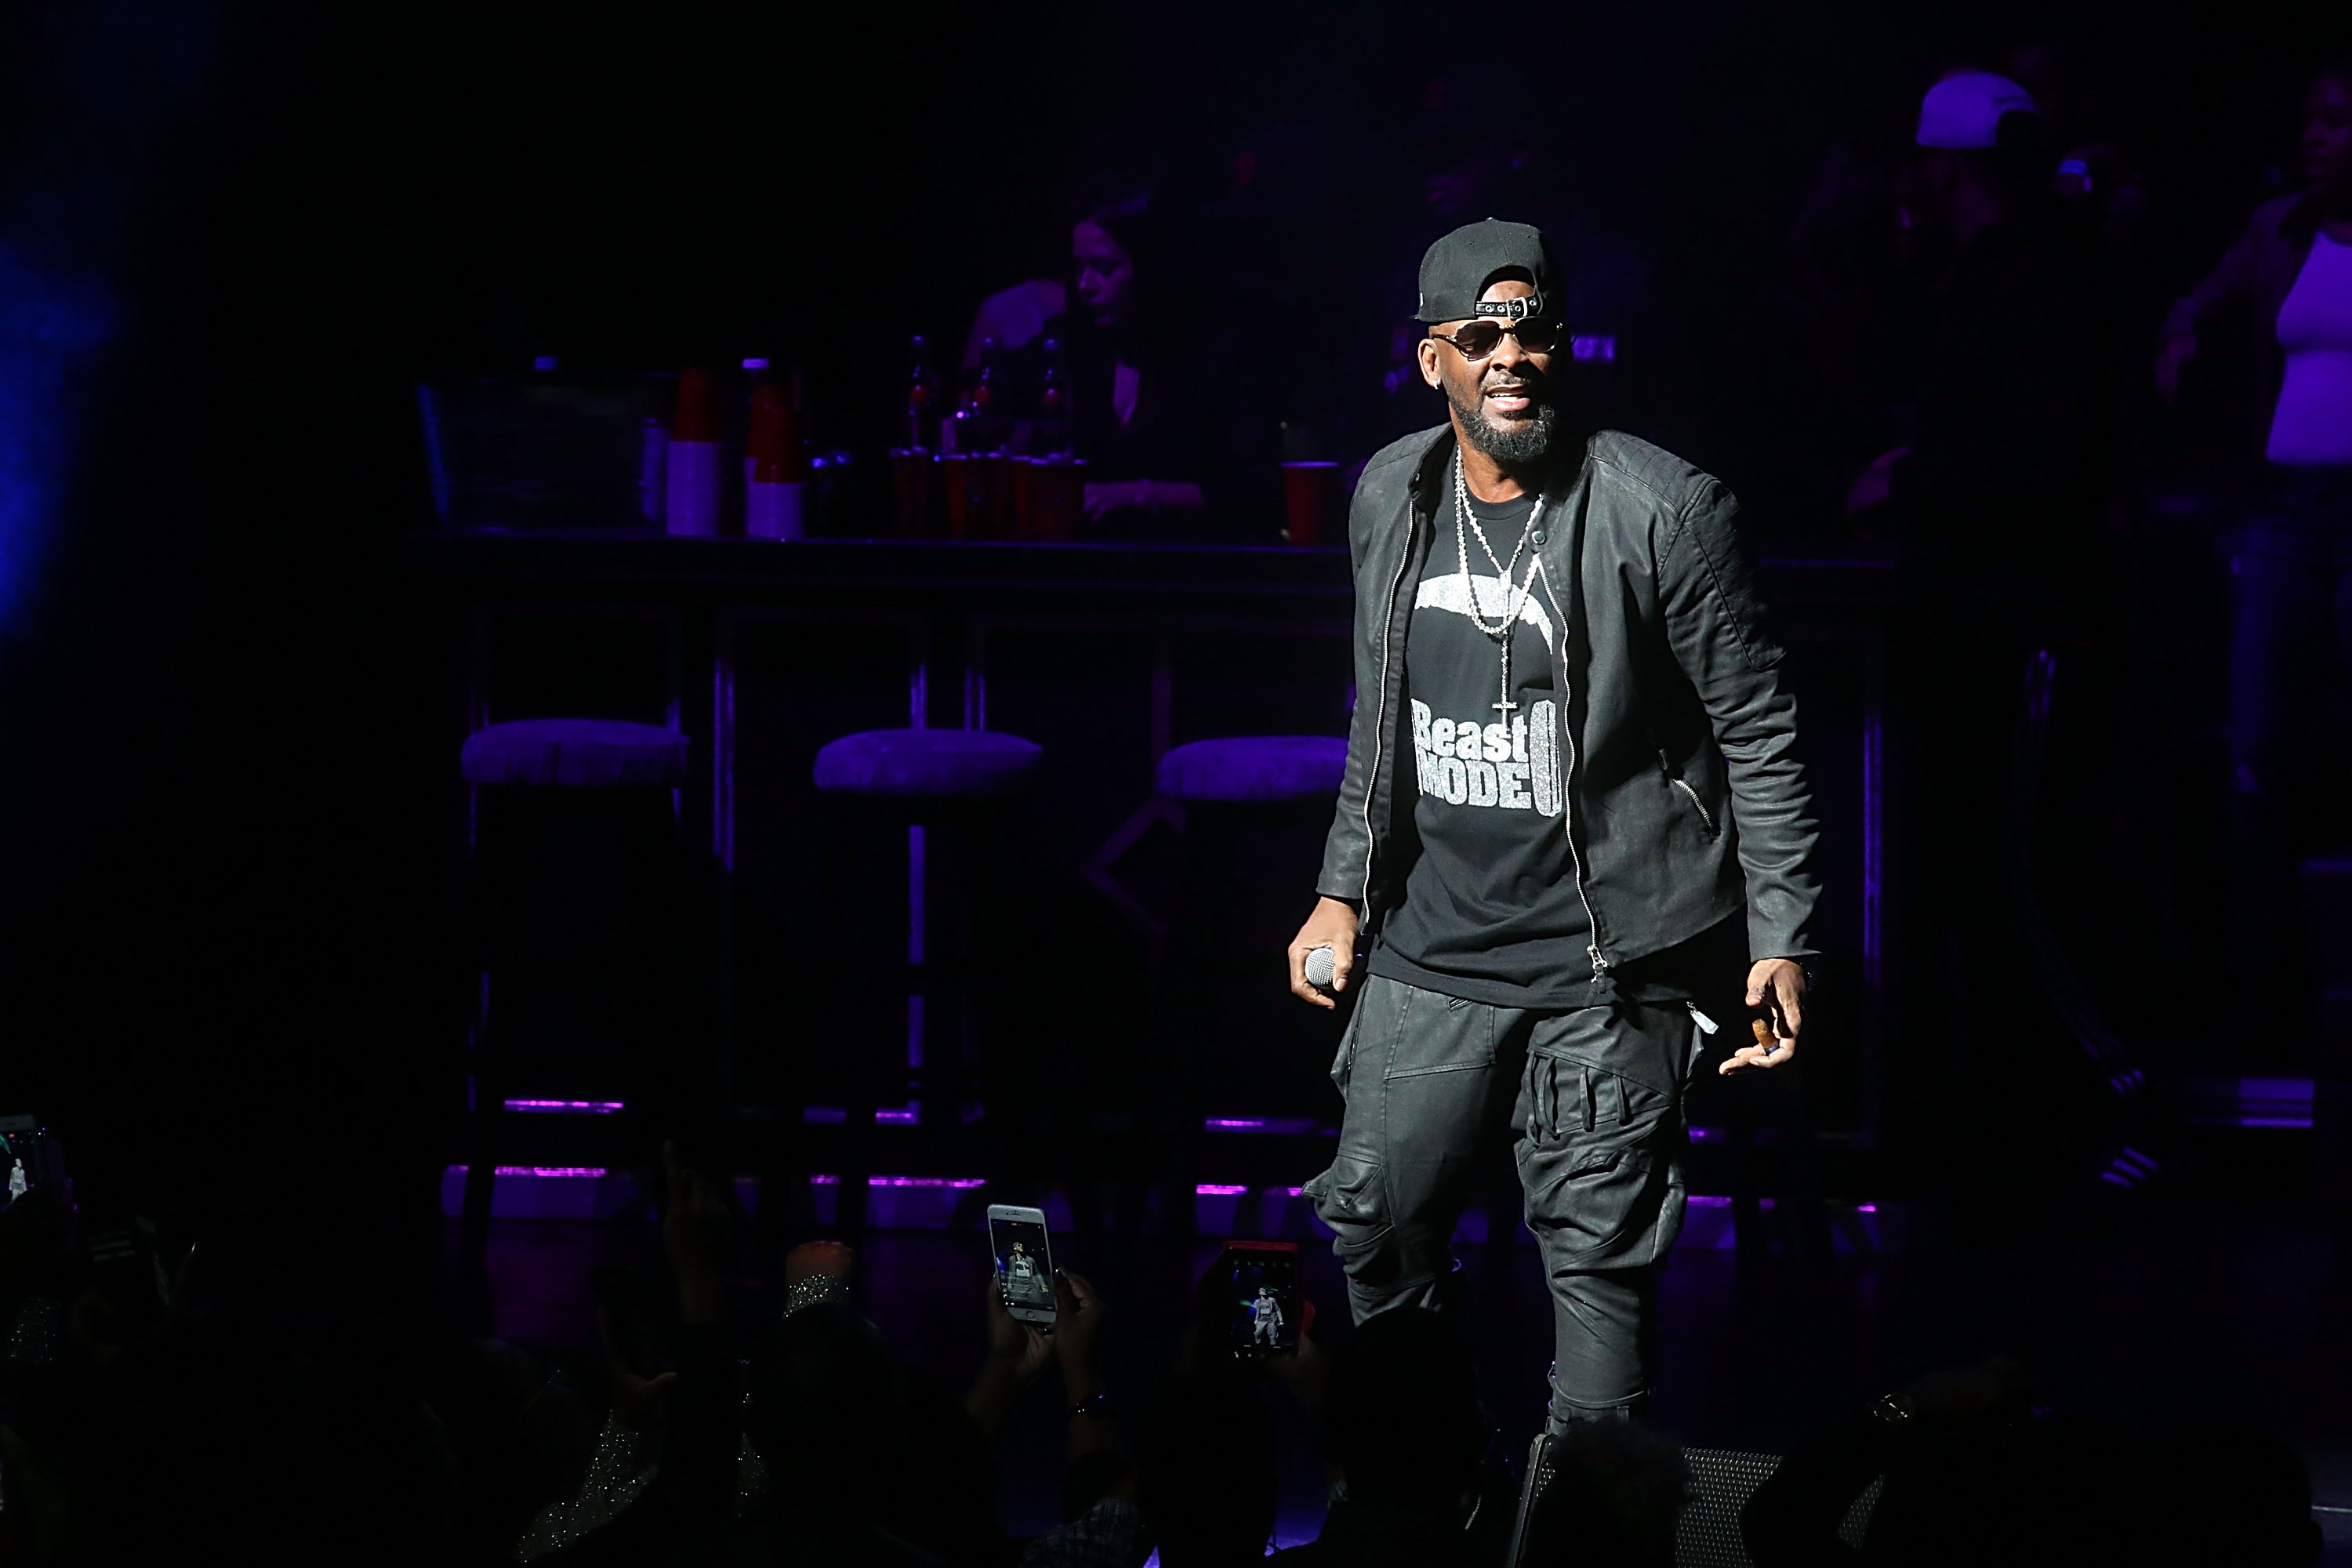 AUSTIN, TEXAS - MARCH 03: R. Kelly performs in concert at The Bass Concert Hall on March 3, 2017 in Austin, Texas. (Photo by Gary Miller/Getty Images)